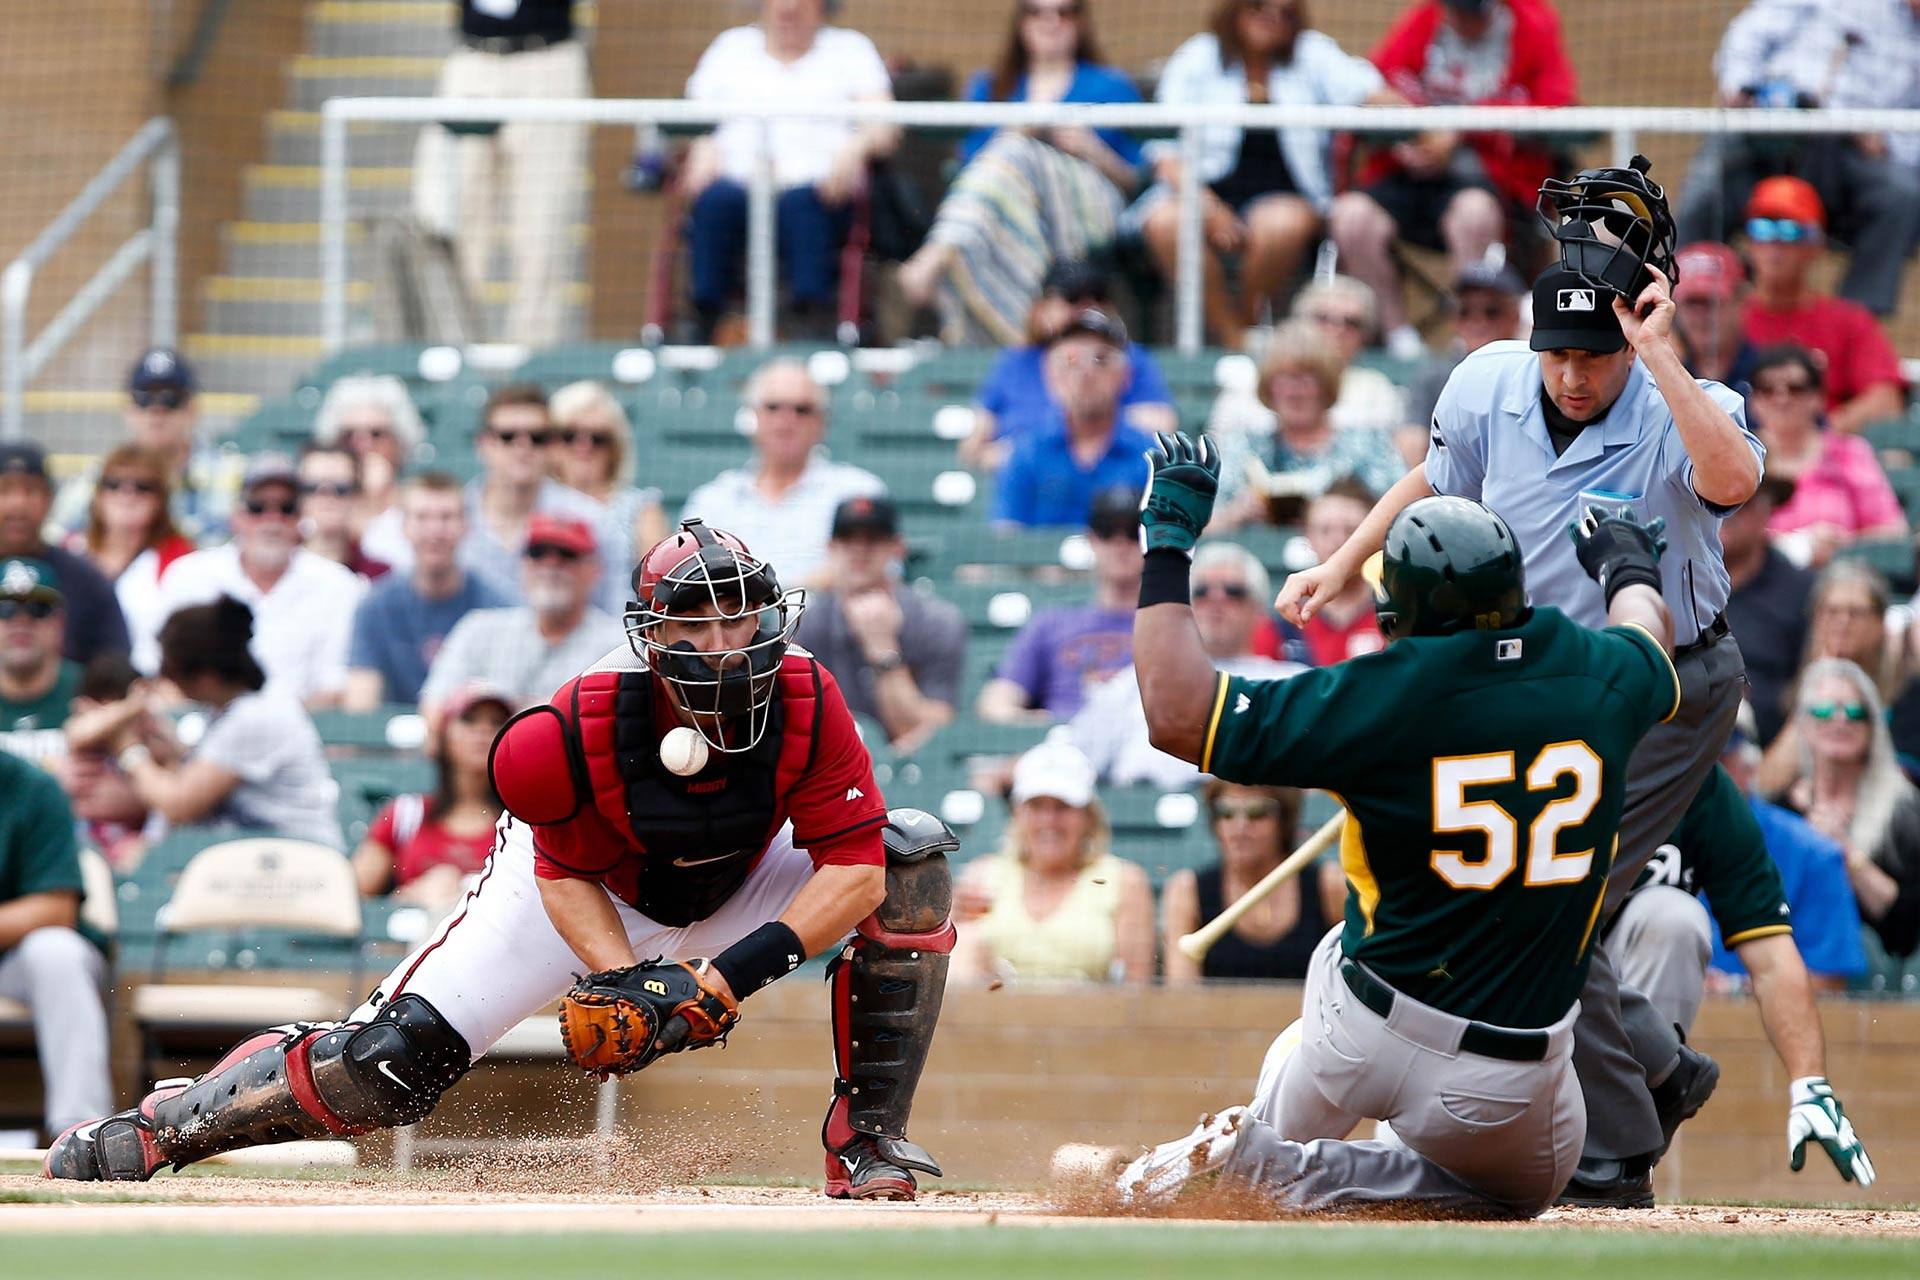 Arizona Diamondbacks catcher, Miguel Montero (26), misses the tag on Oakland Athletics left fielder, Yoenis Cespedes (52), at Salt River Fields at Talking Stick on March 6, 2014 in Scottsdale, Arizona.